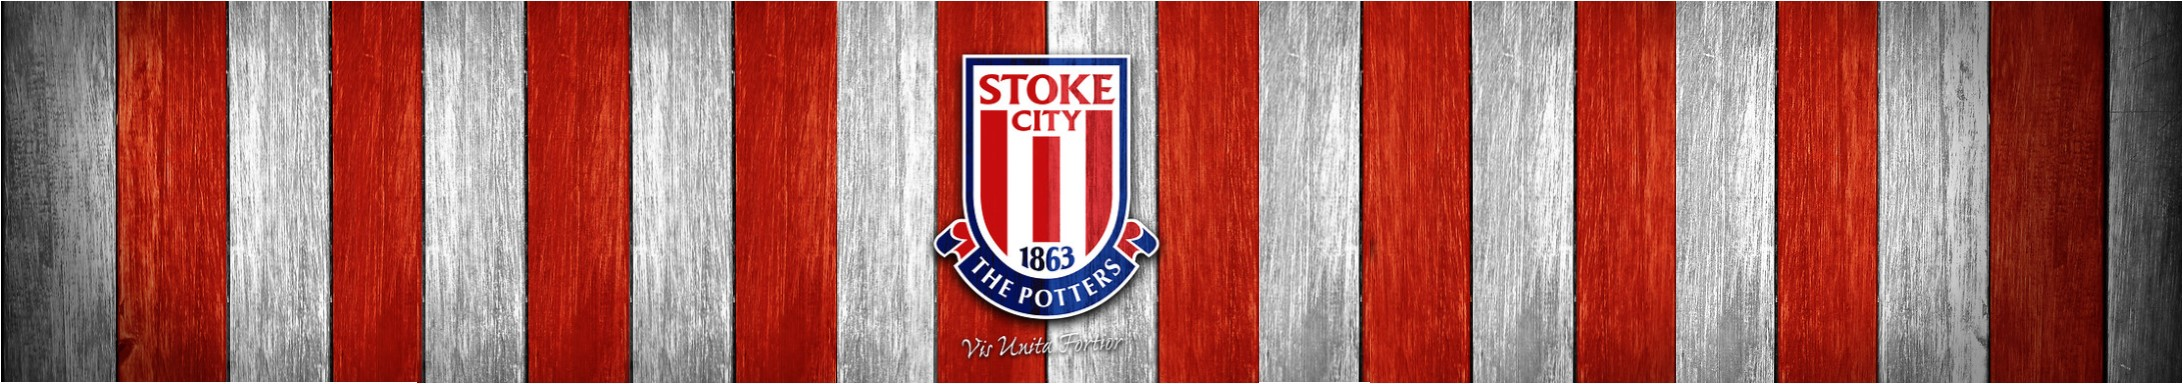 Stoke City ID Camp Banner